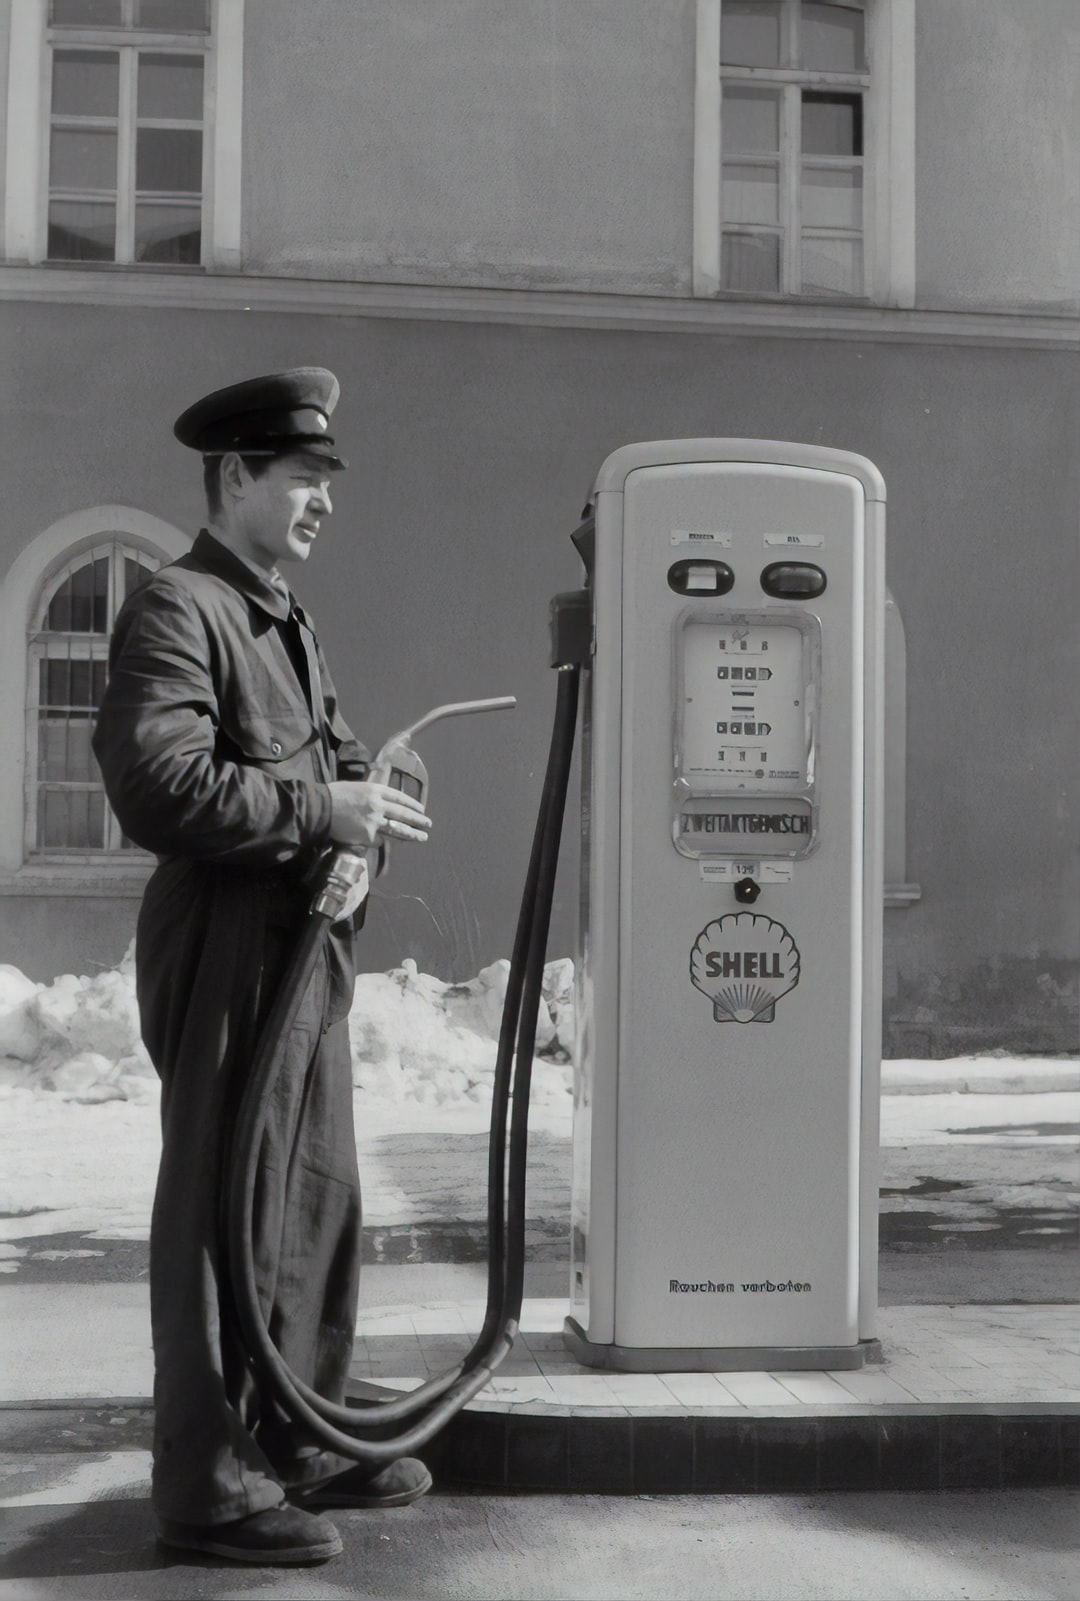 Gas station attendant at the petrol pump. 1955